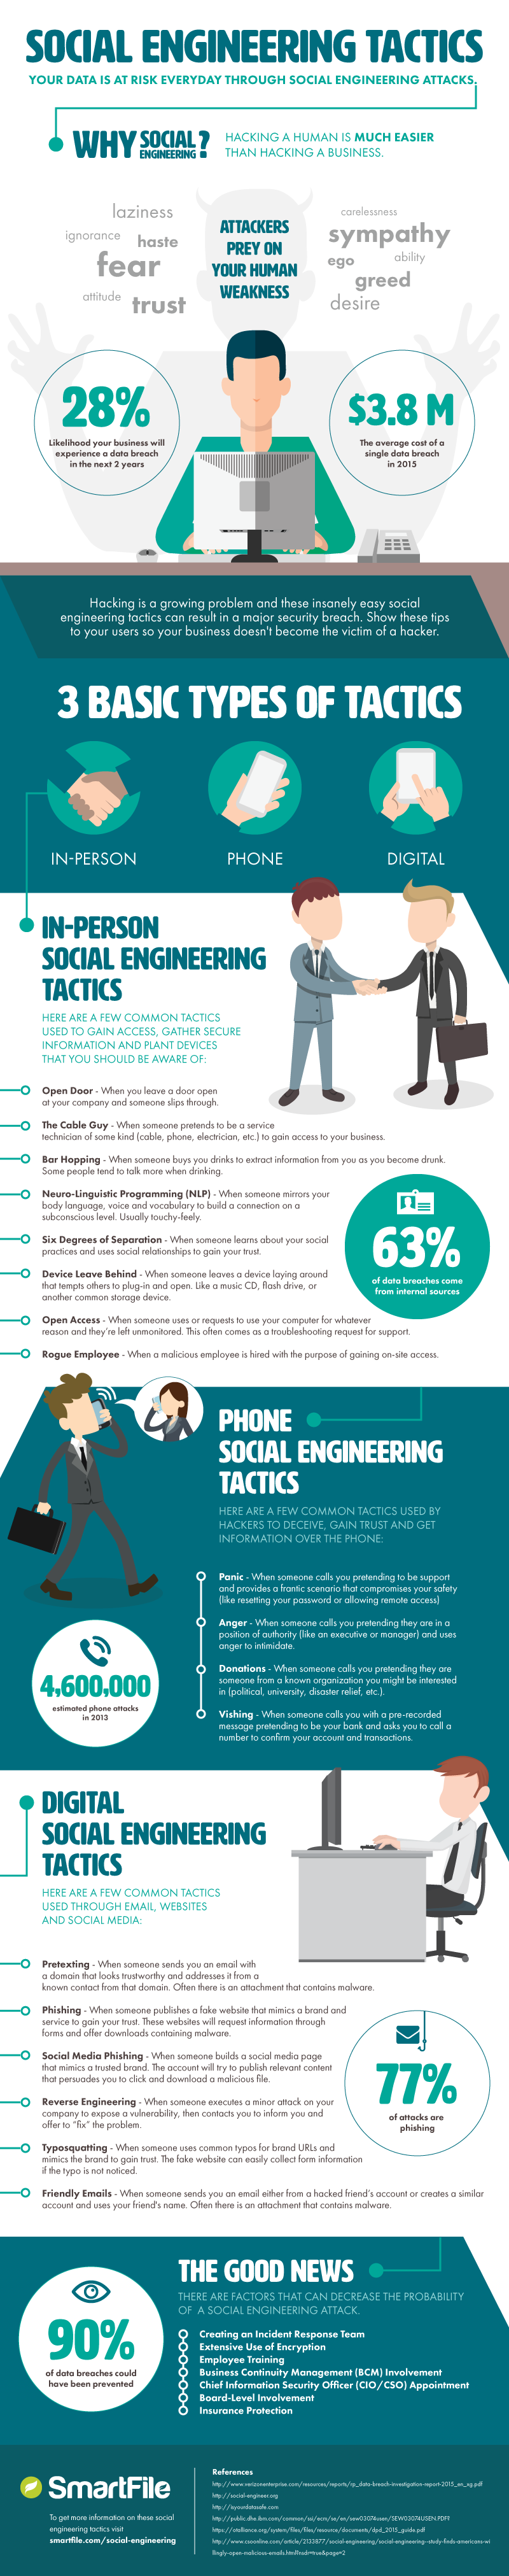 smartfile-social-engineering-infographic.png